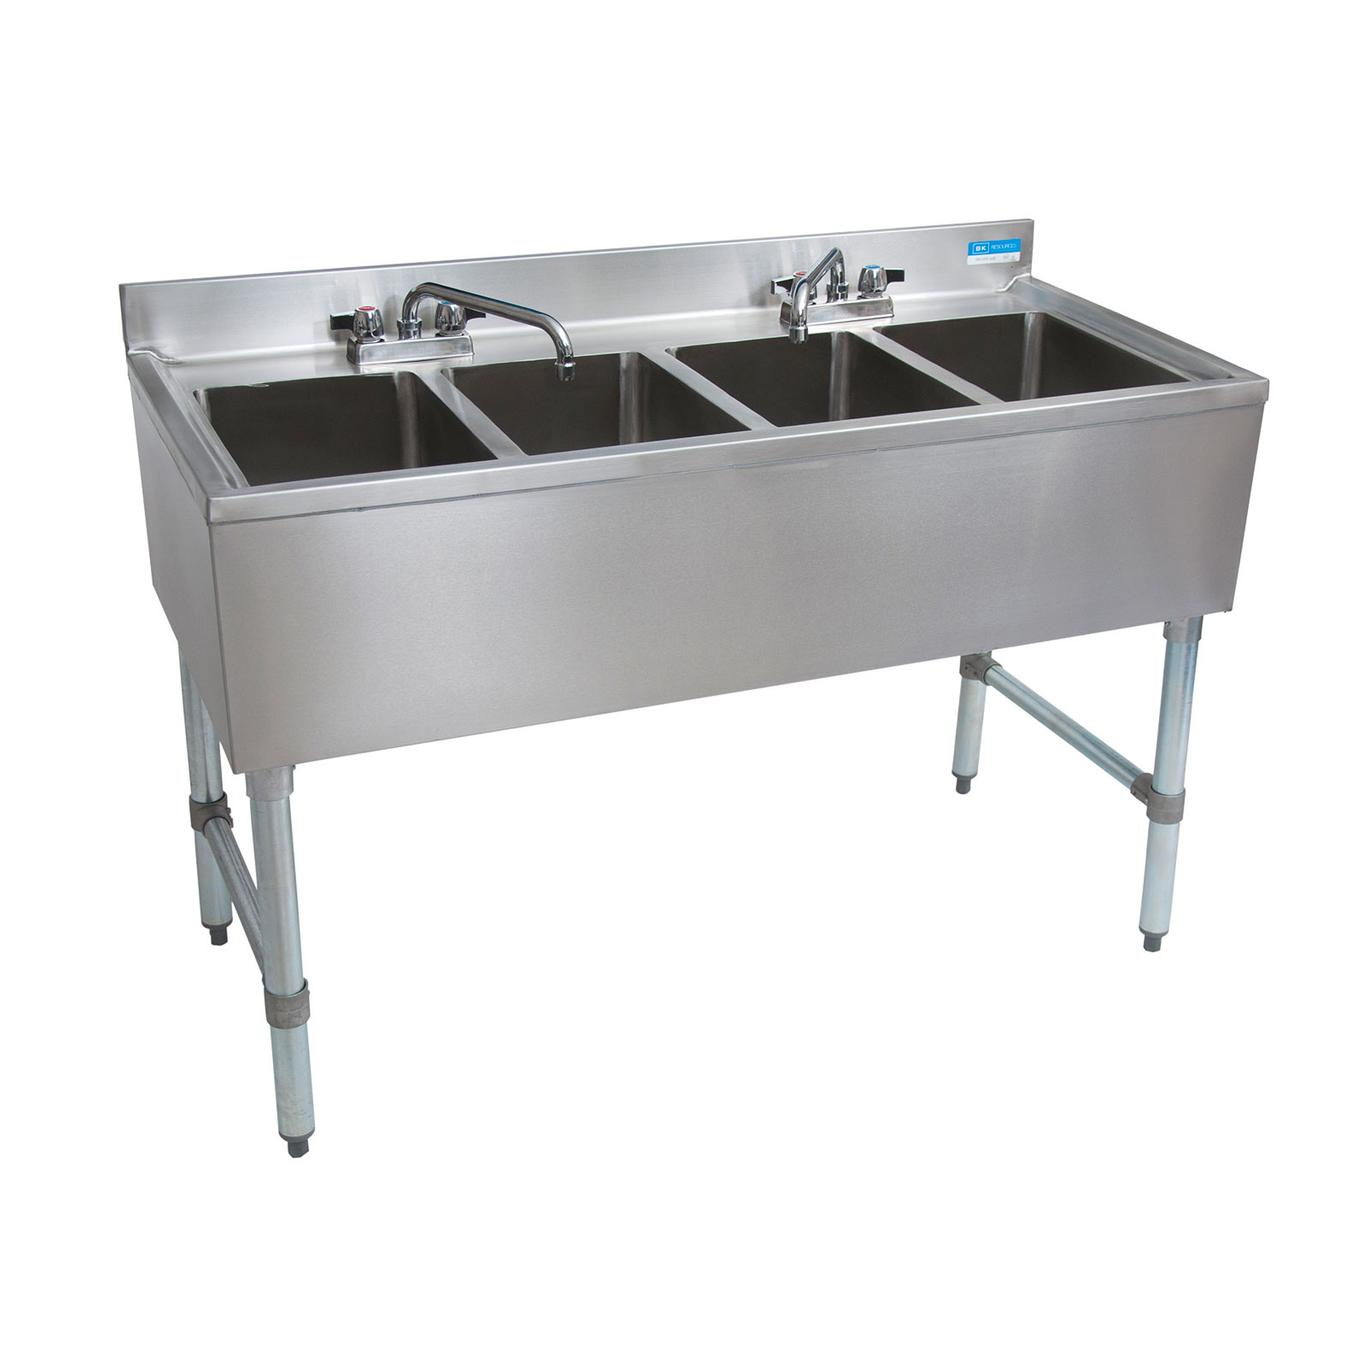 Bk Resources Bkubs 448s 48 W Four Compartment Stainless